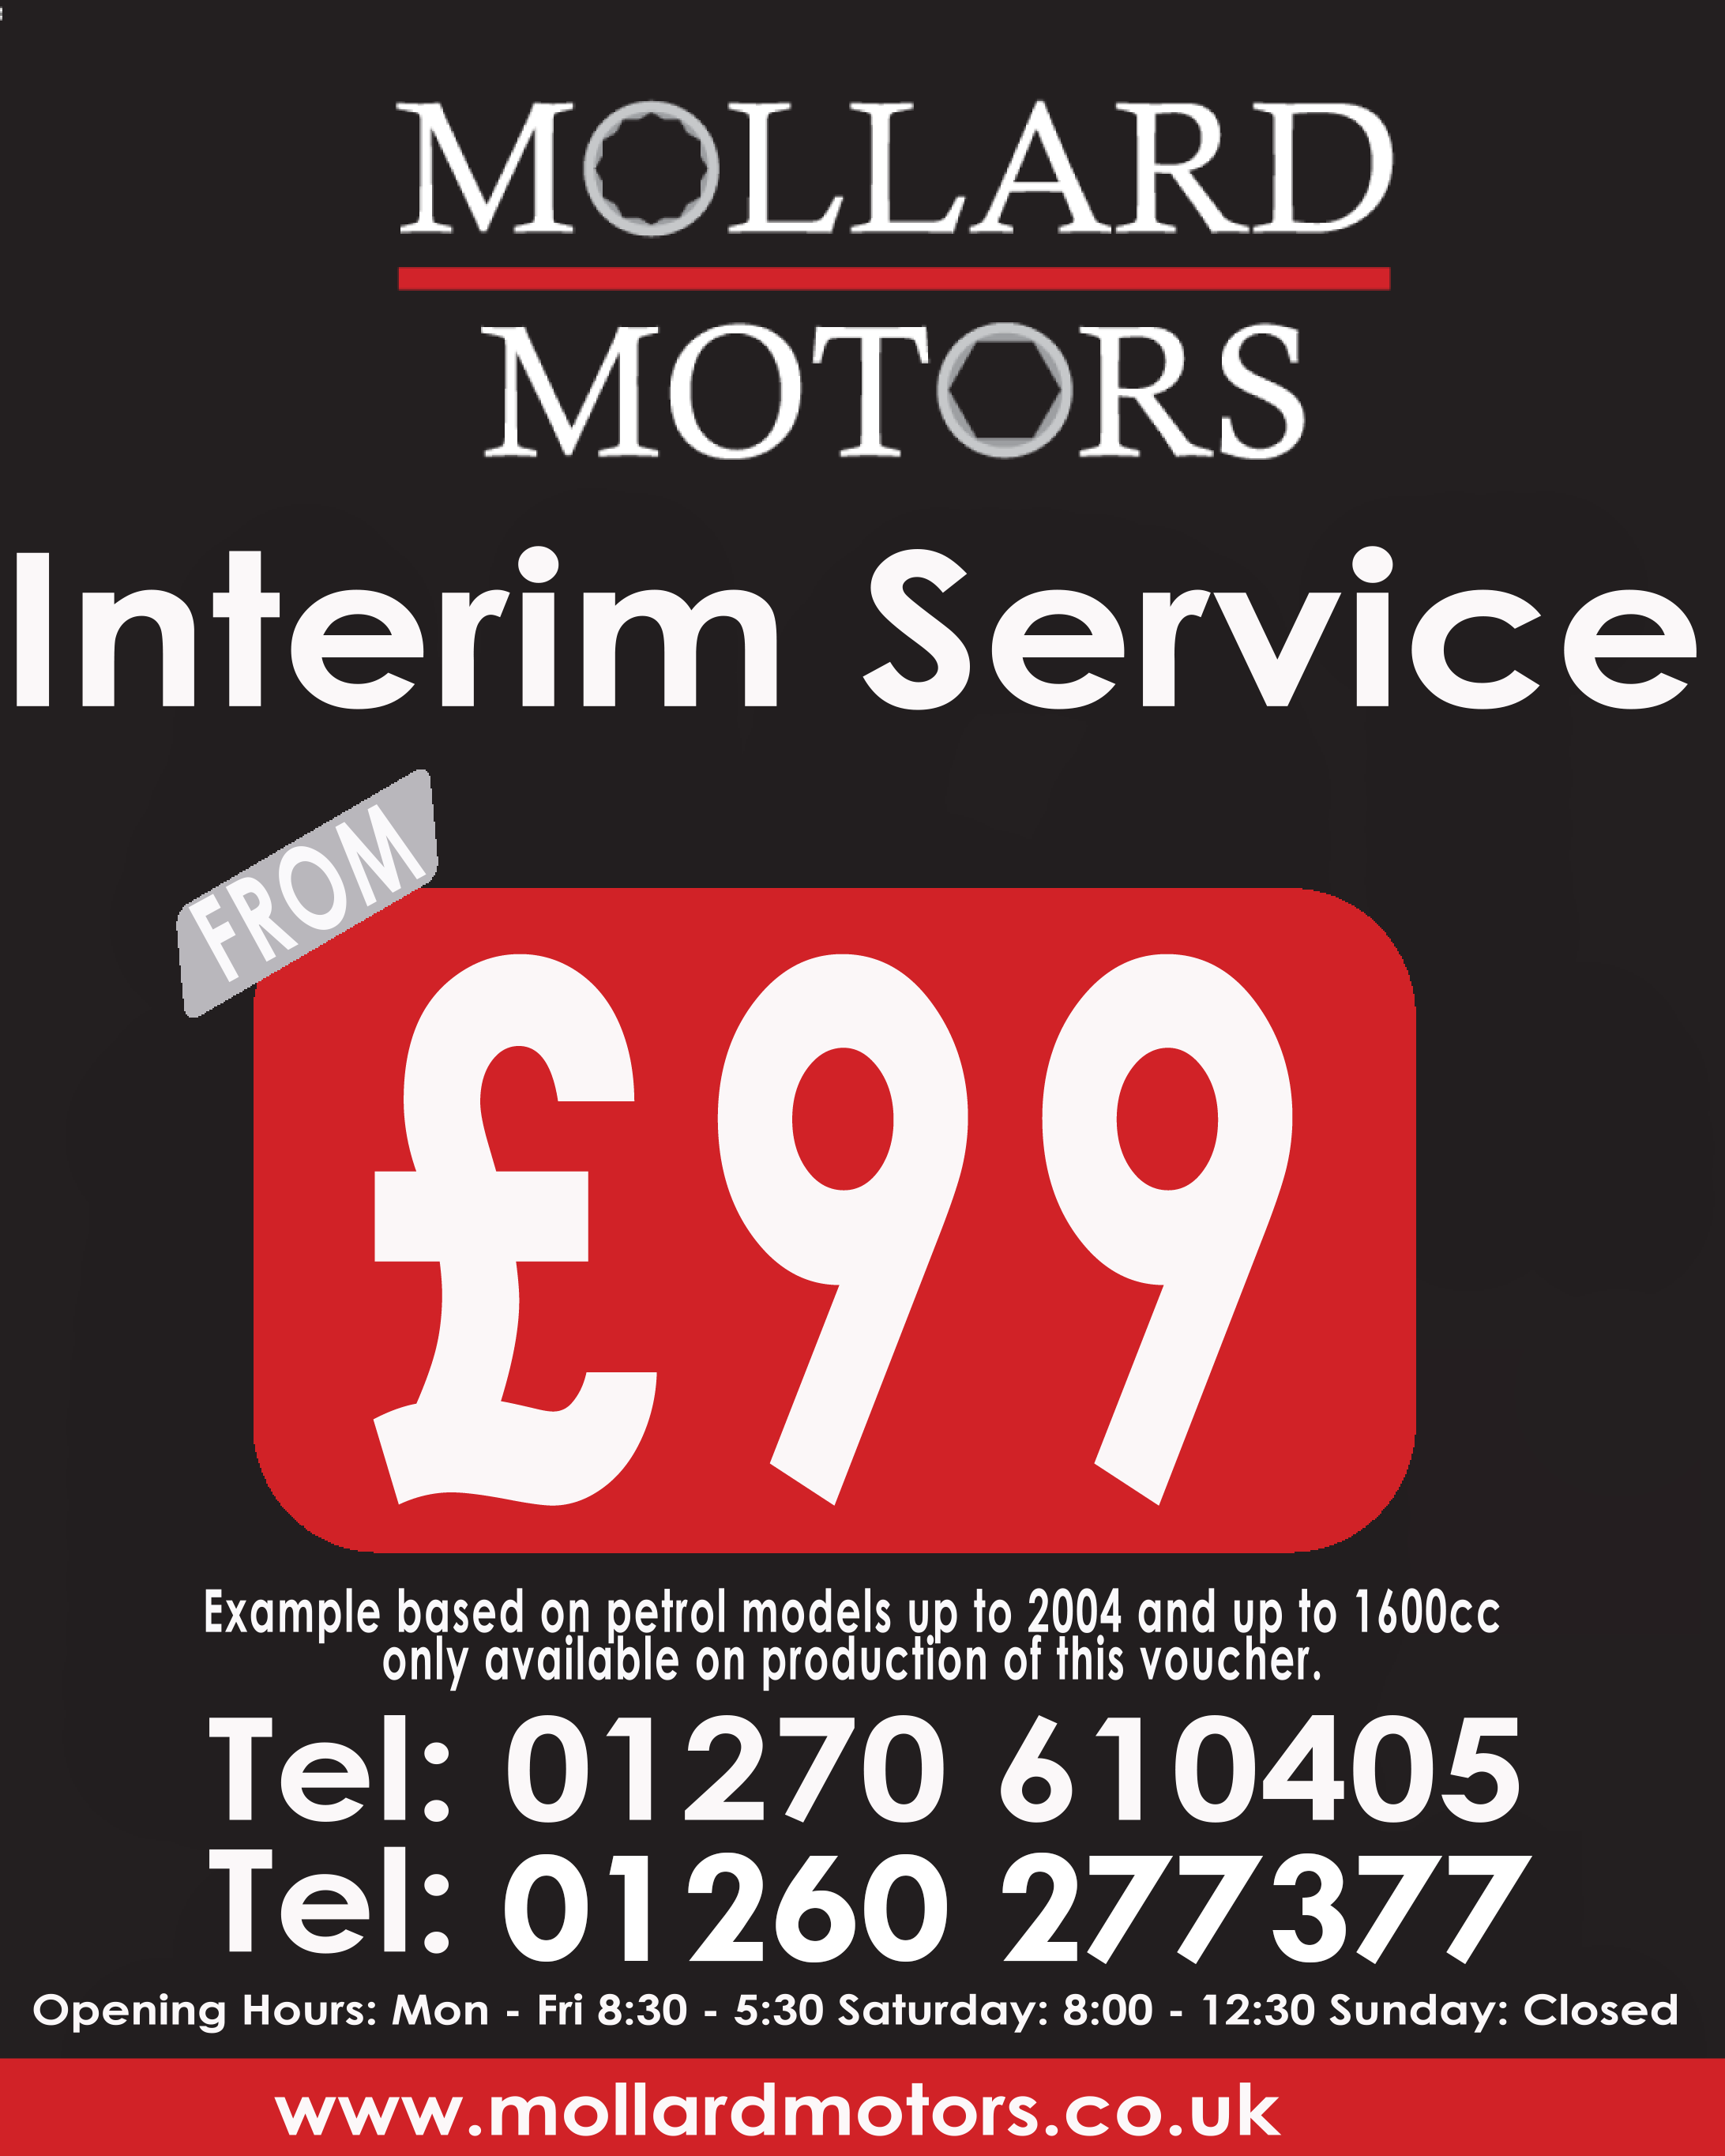 INTERIM SERVICE FROM £69